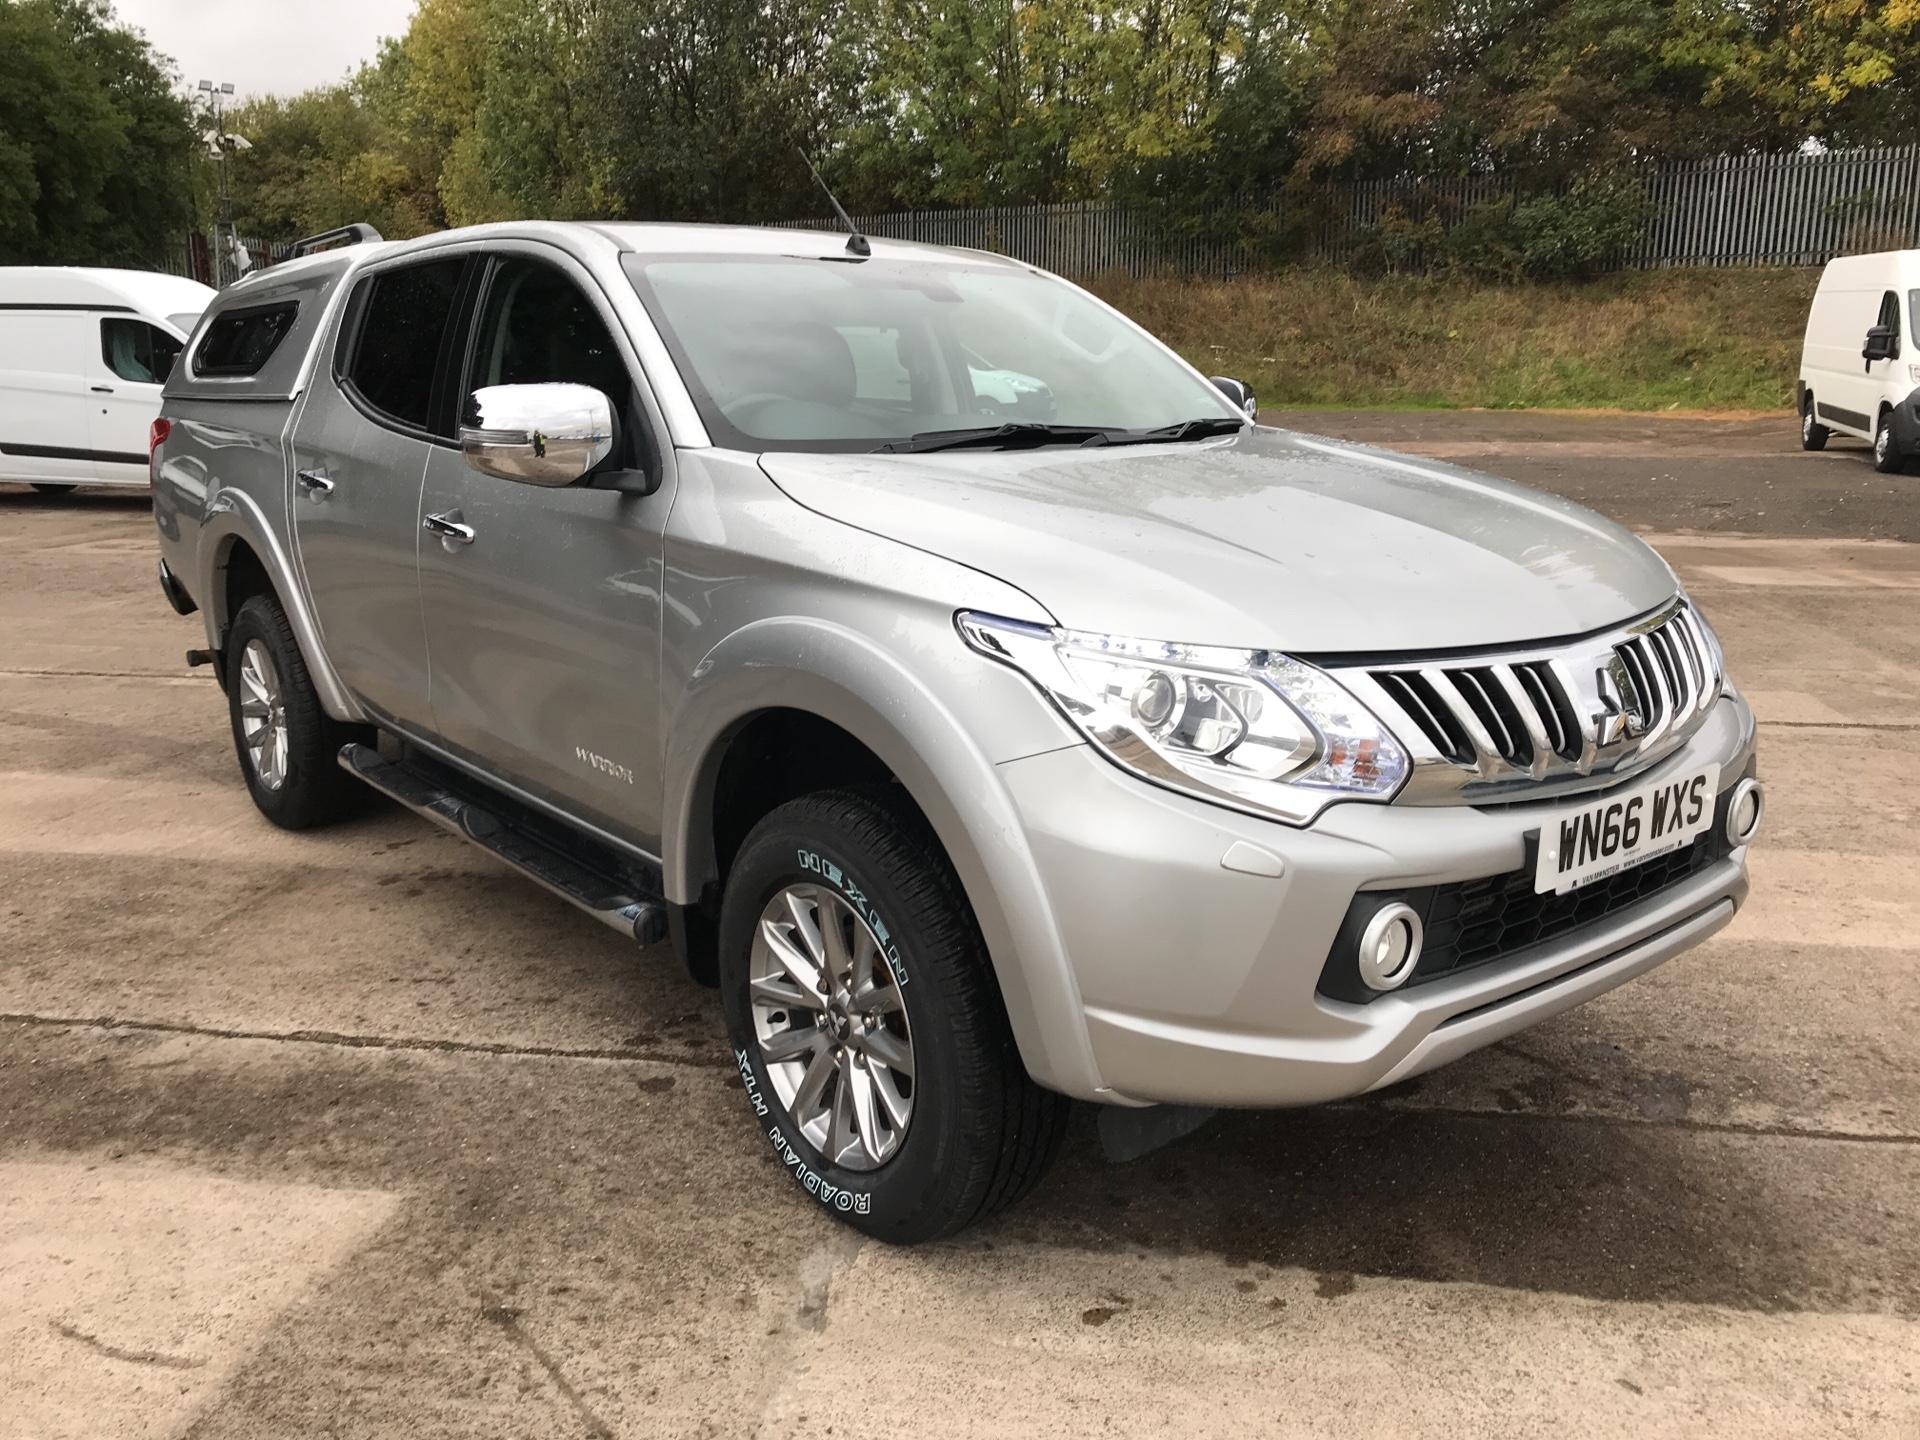 2016 Mitsubishi L200 DOUBLE CAB DI-D 178PS WARRIOR 4WD EURO 5